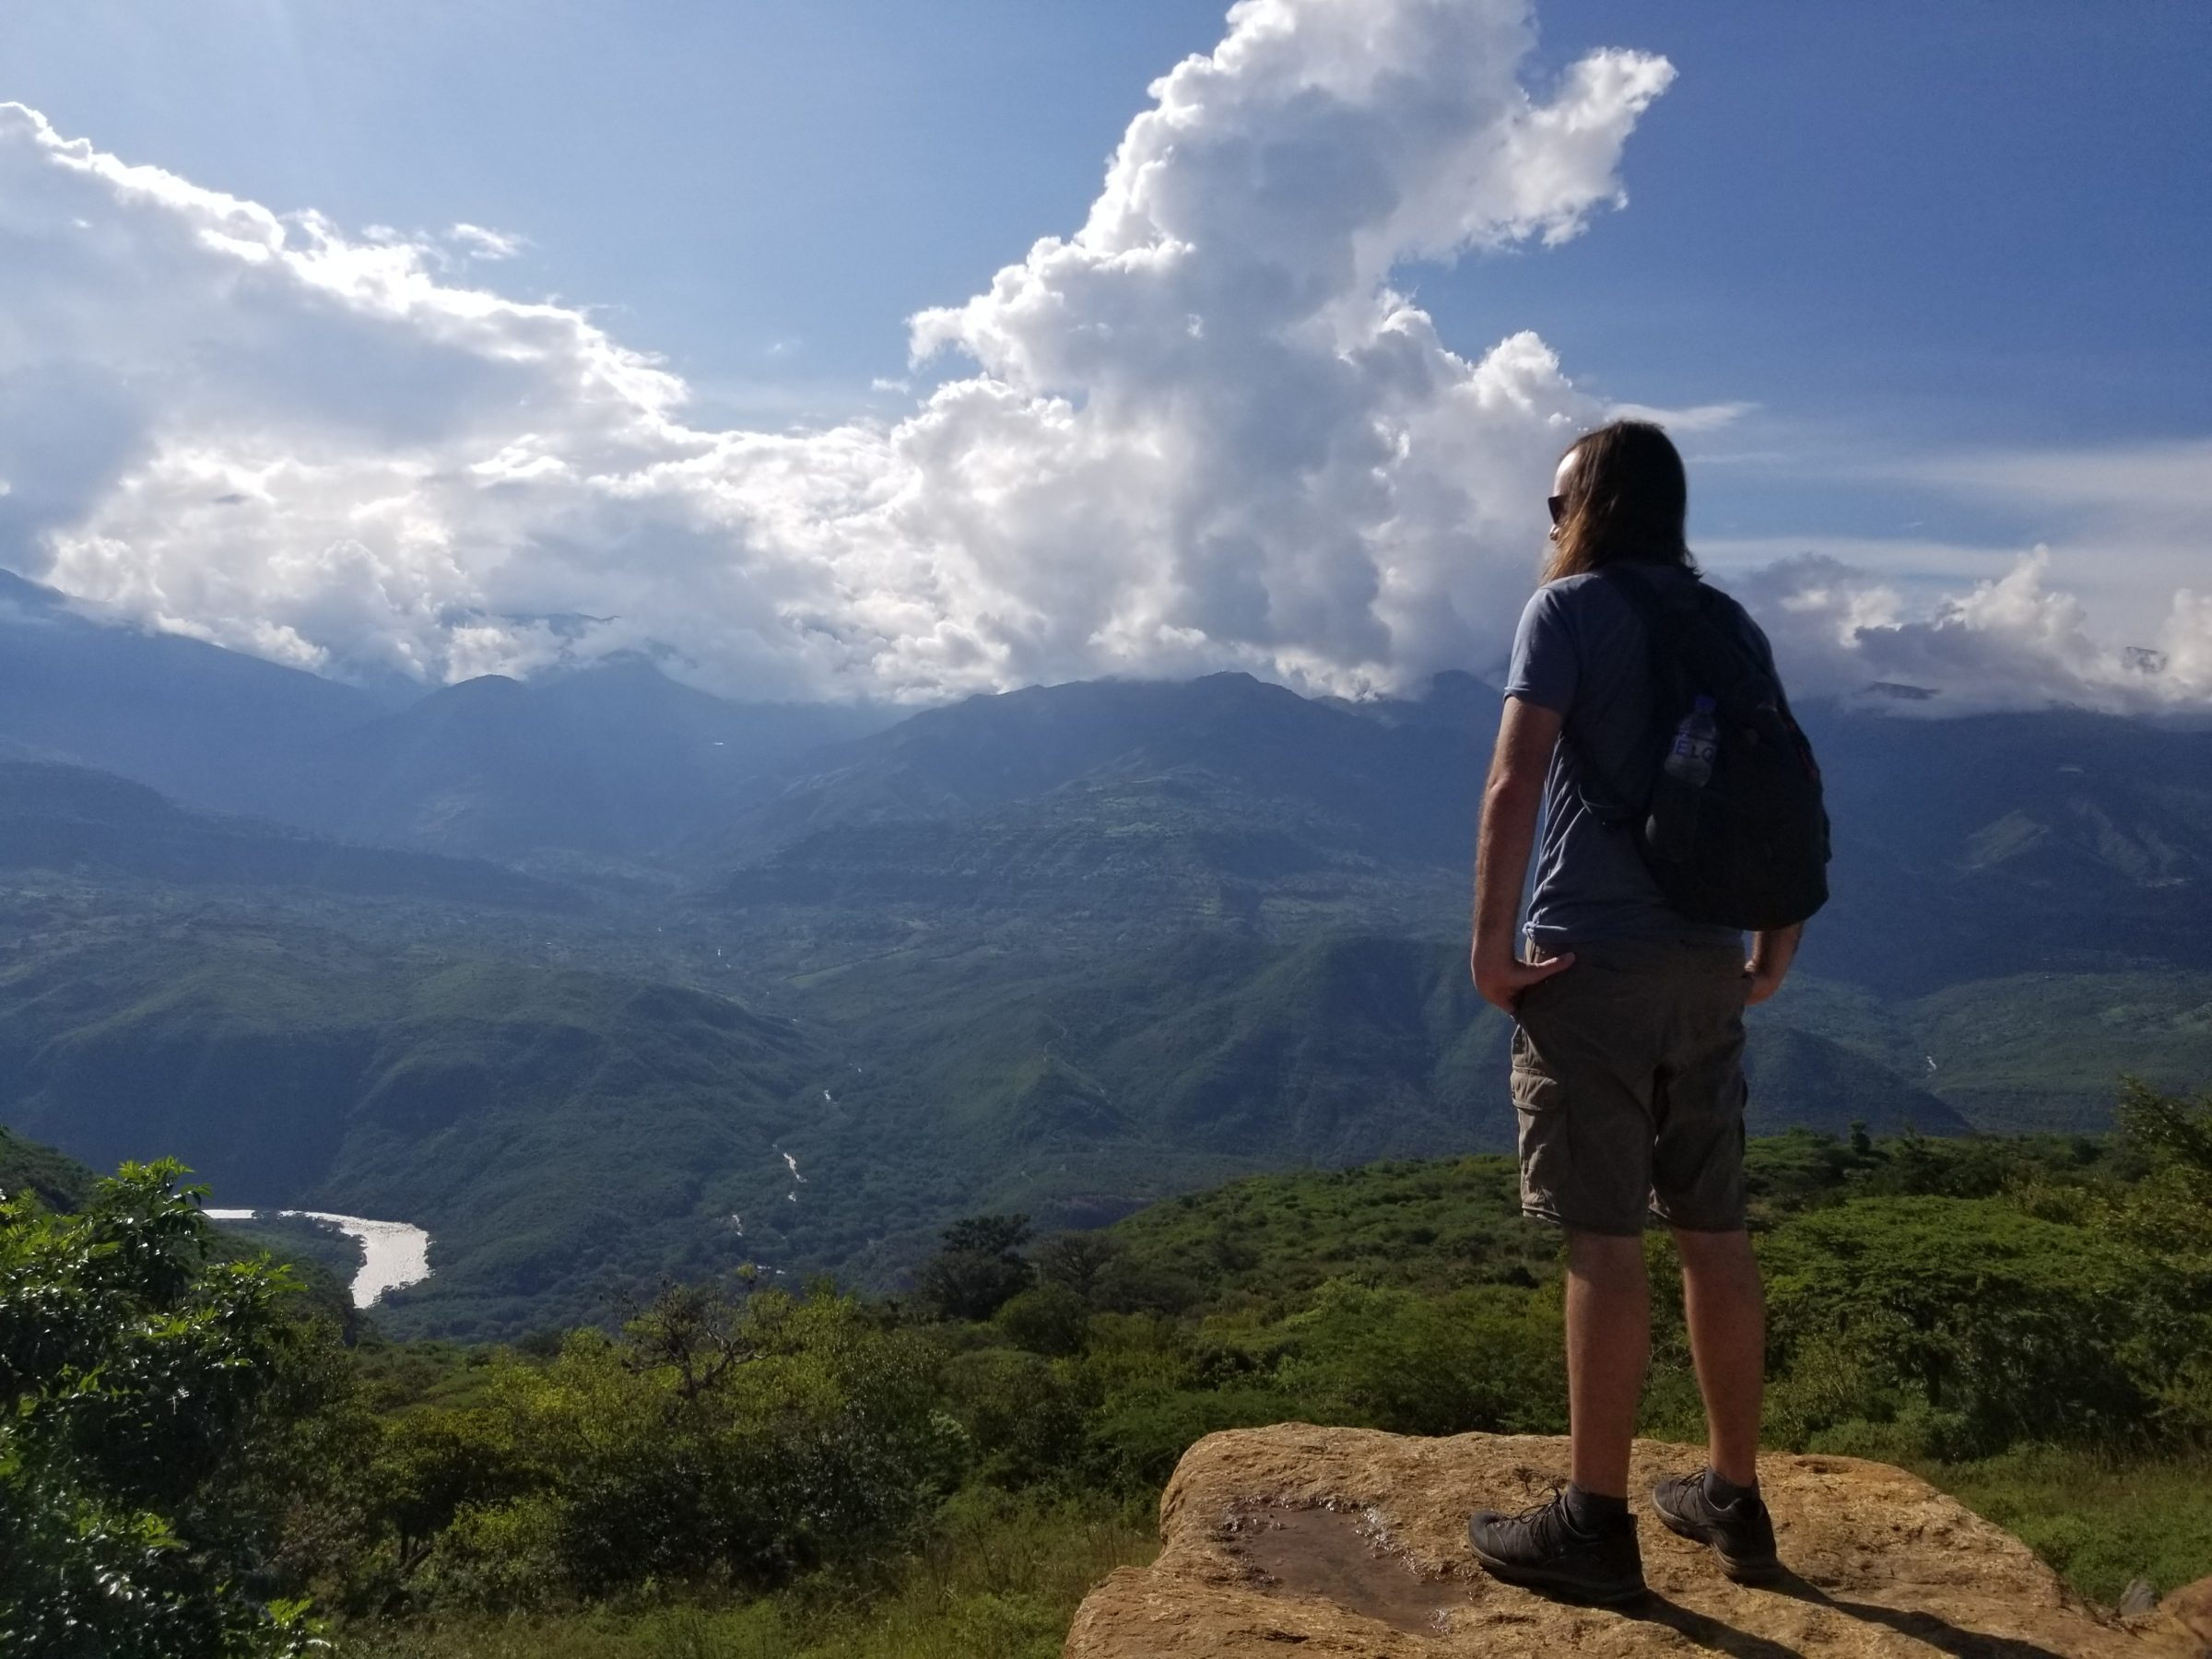 Jimmy overlooking the beautiful view of the river from Guane